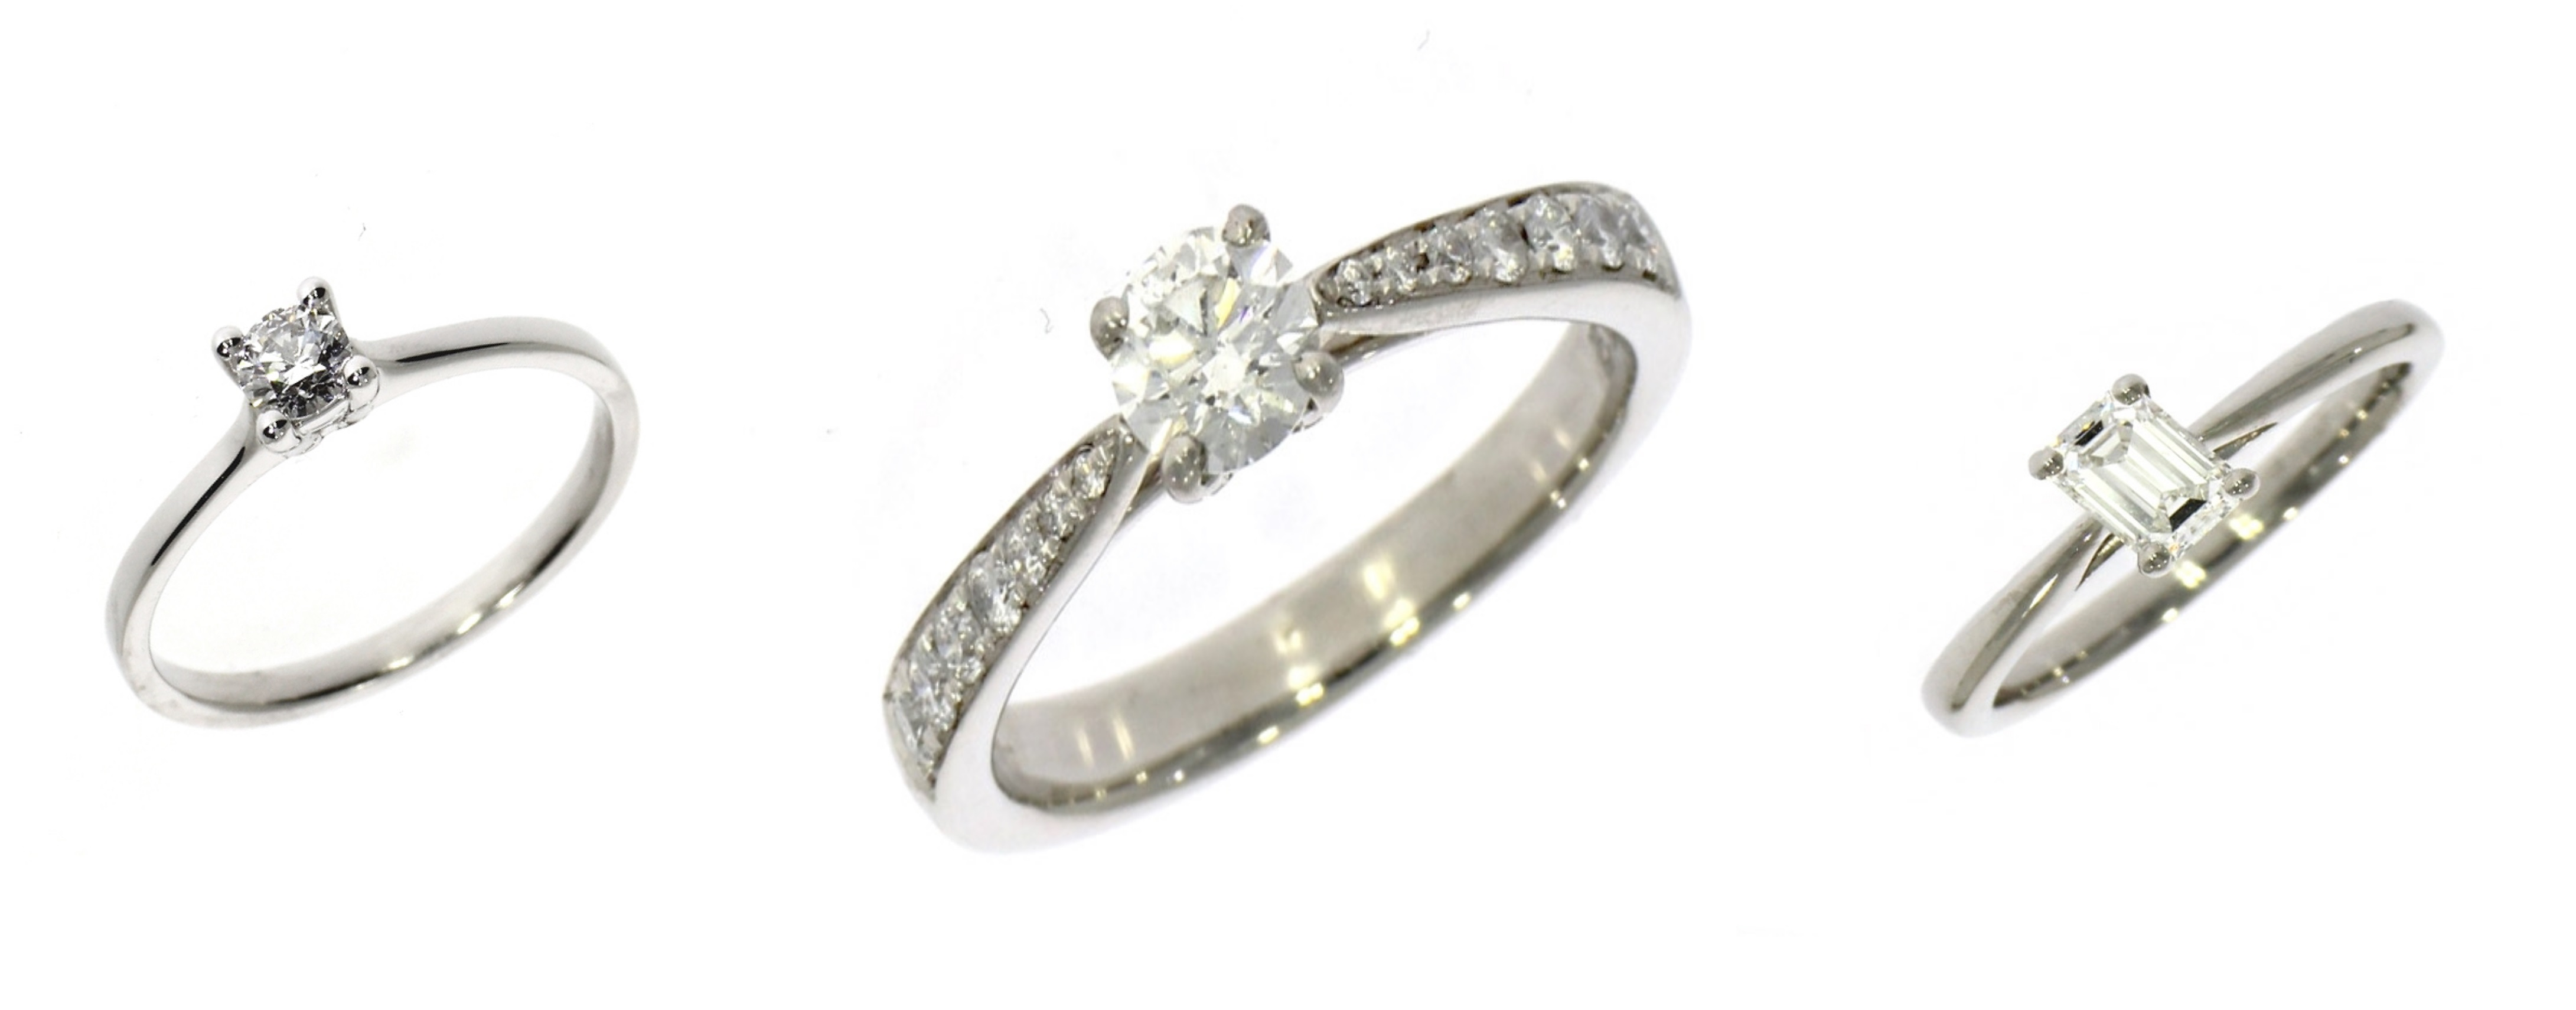 engagement g white wedding diamonds rose ll diamond you gold simon gorgeous jewelry trends love featuring e spring ring pink rings